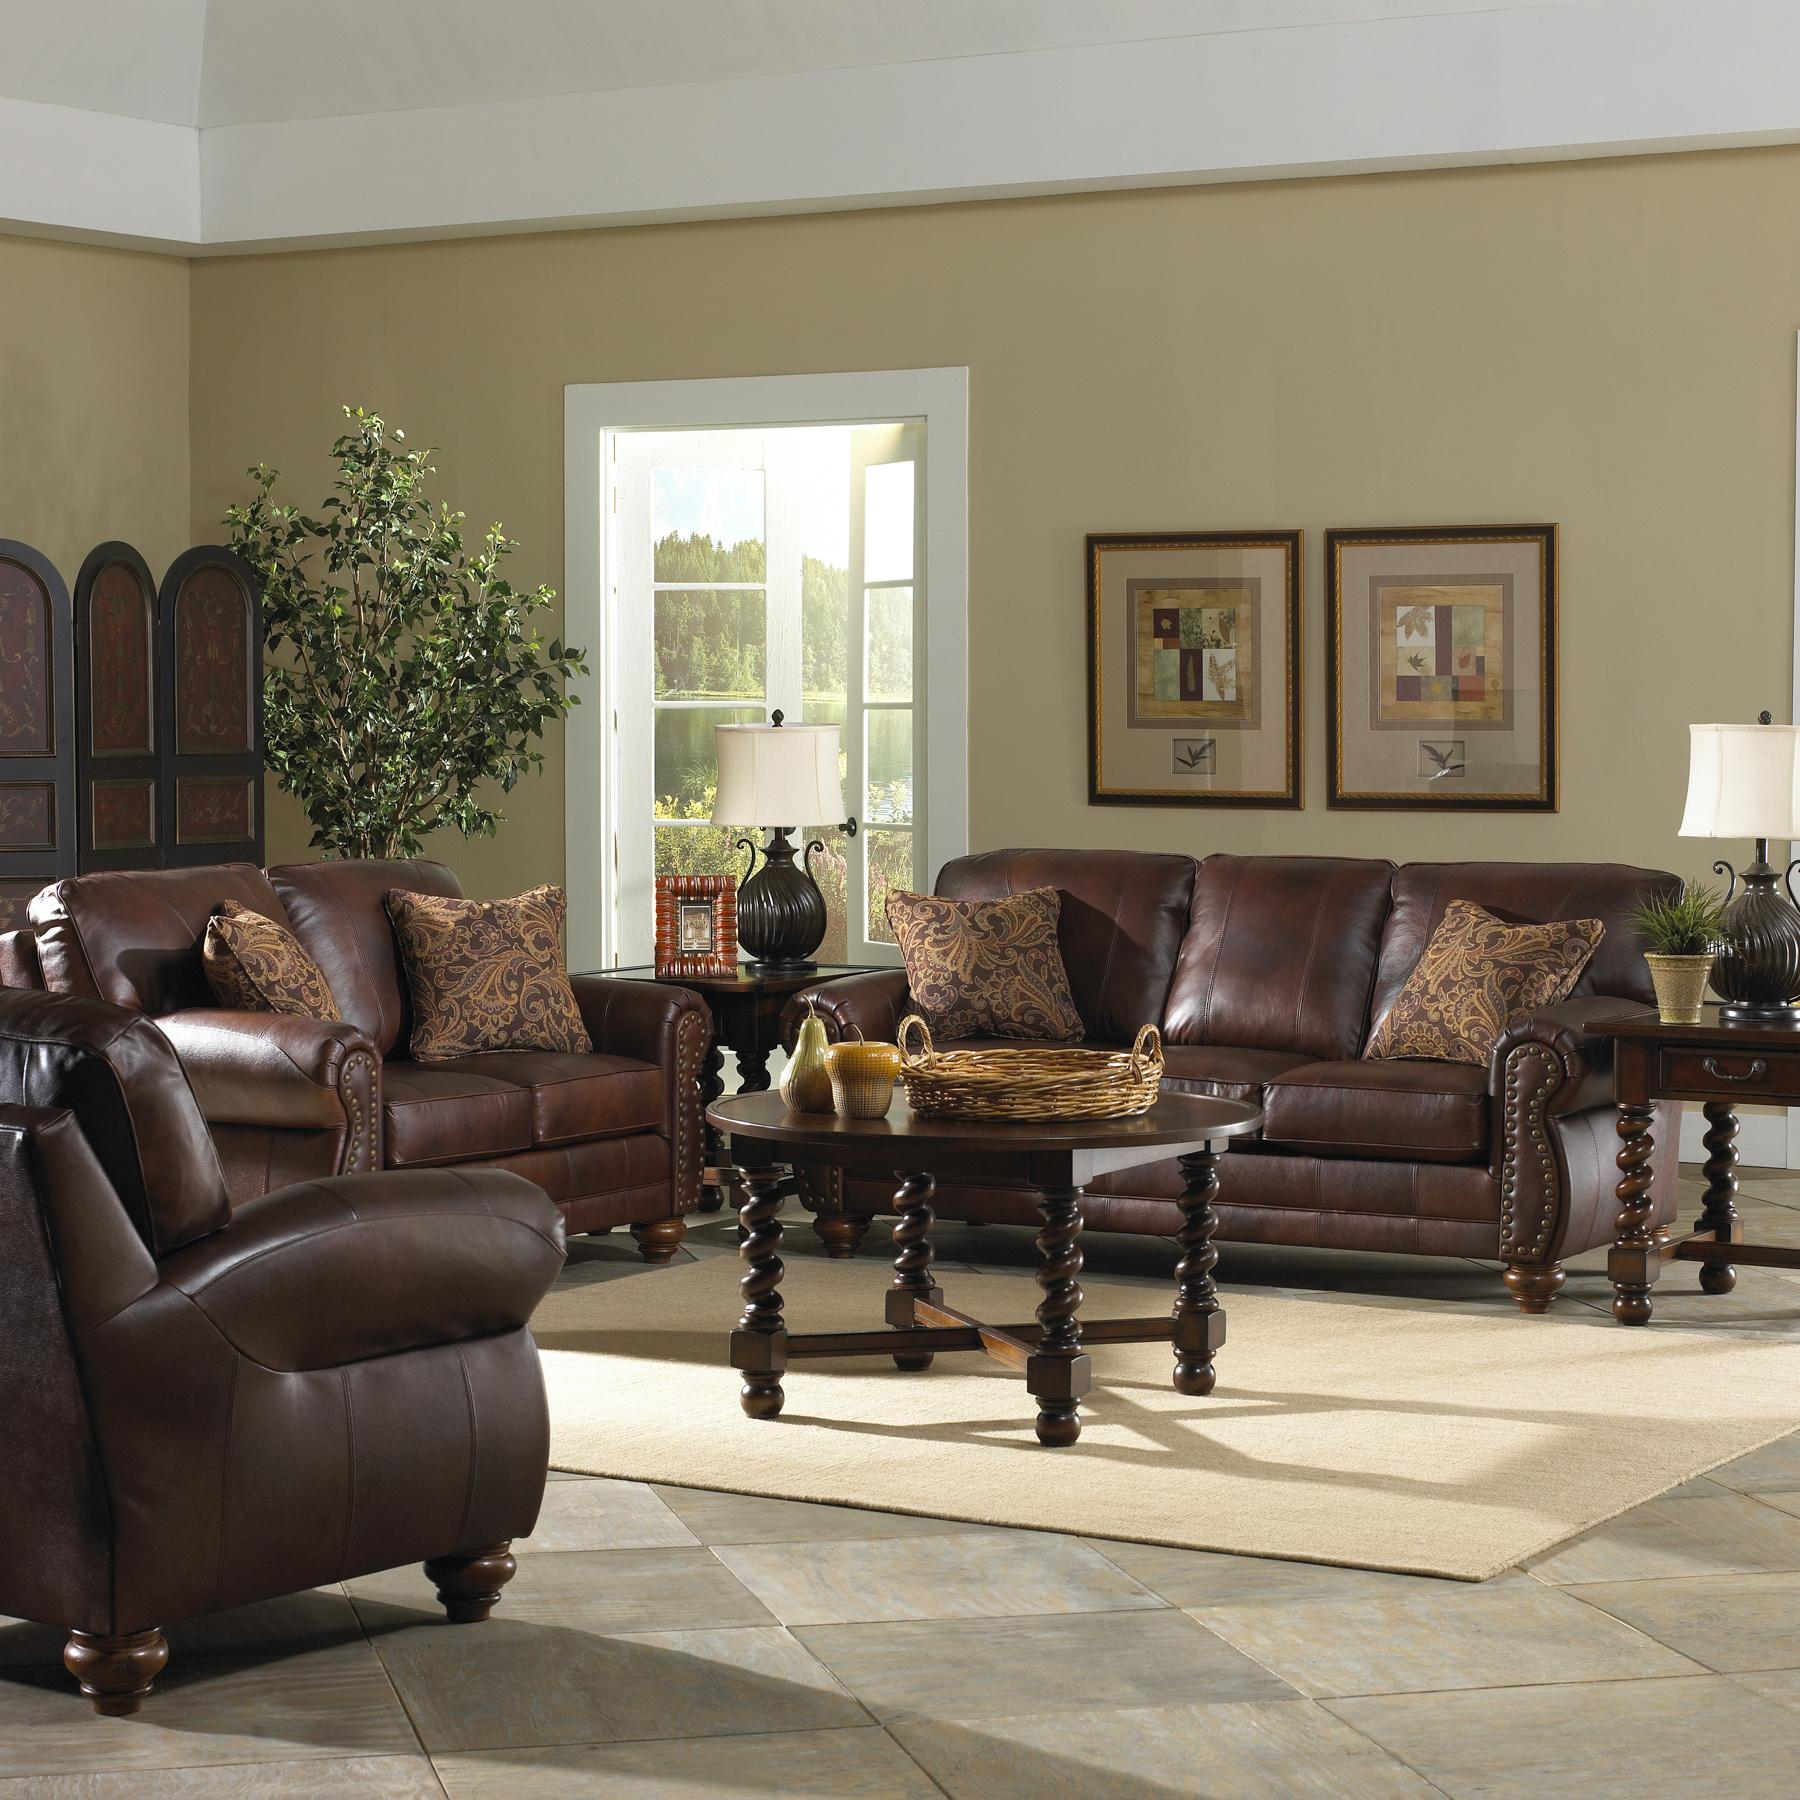 Make Your Home More Elegant with Bullard Furniture for Furniture Ideas: Bullard Furniture | North Carolina Furniture Sales | Furniture For Sale In Fayetteville Nc